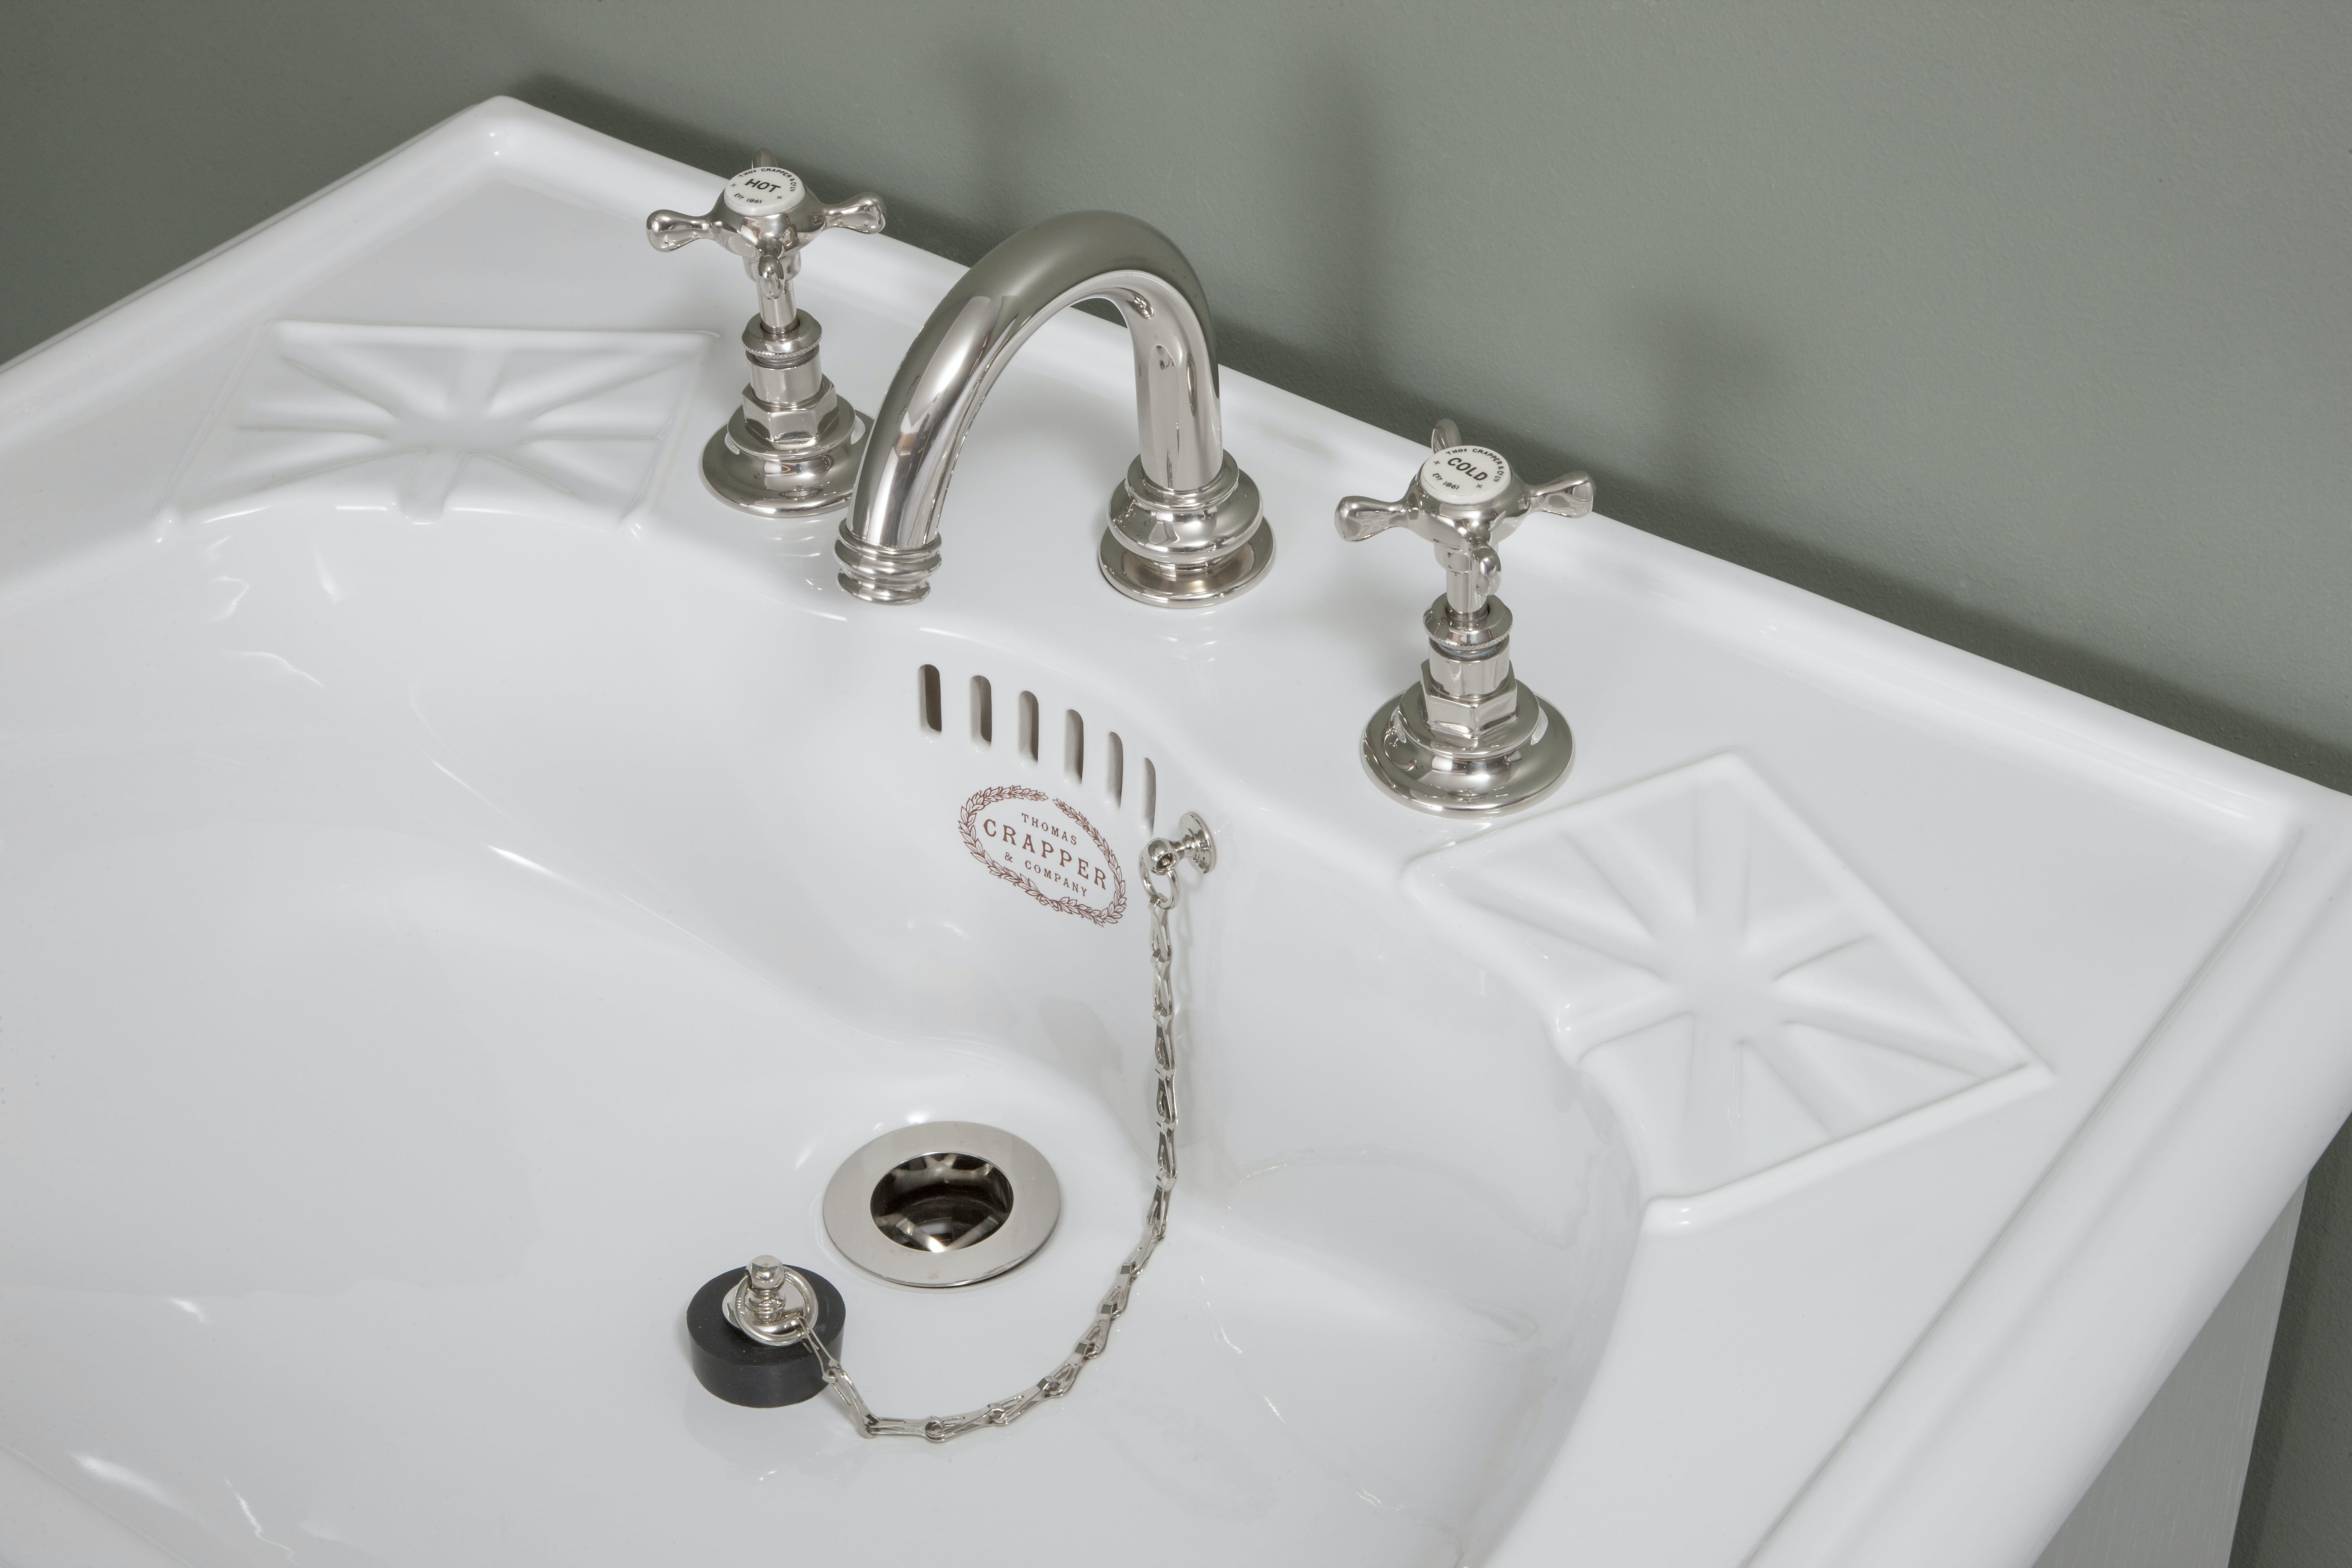 White Thomas Crapper Sink with Silver tap